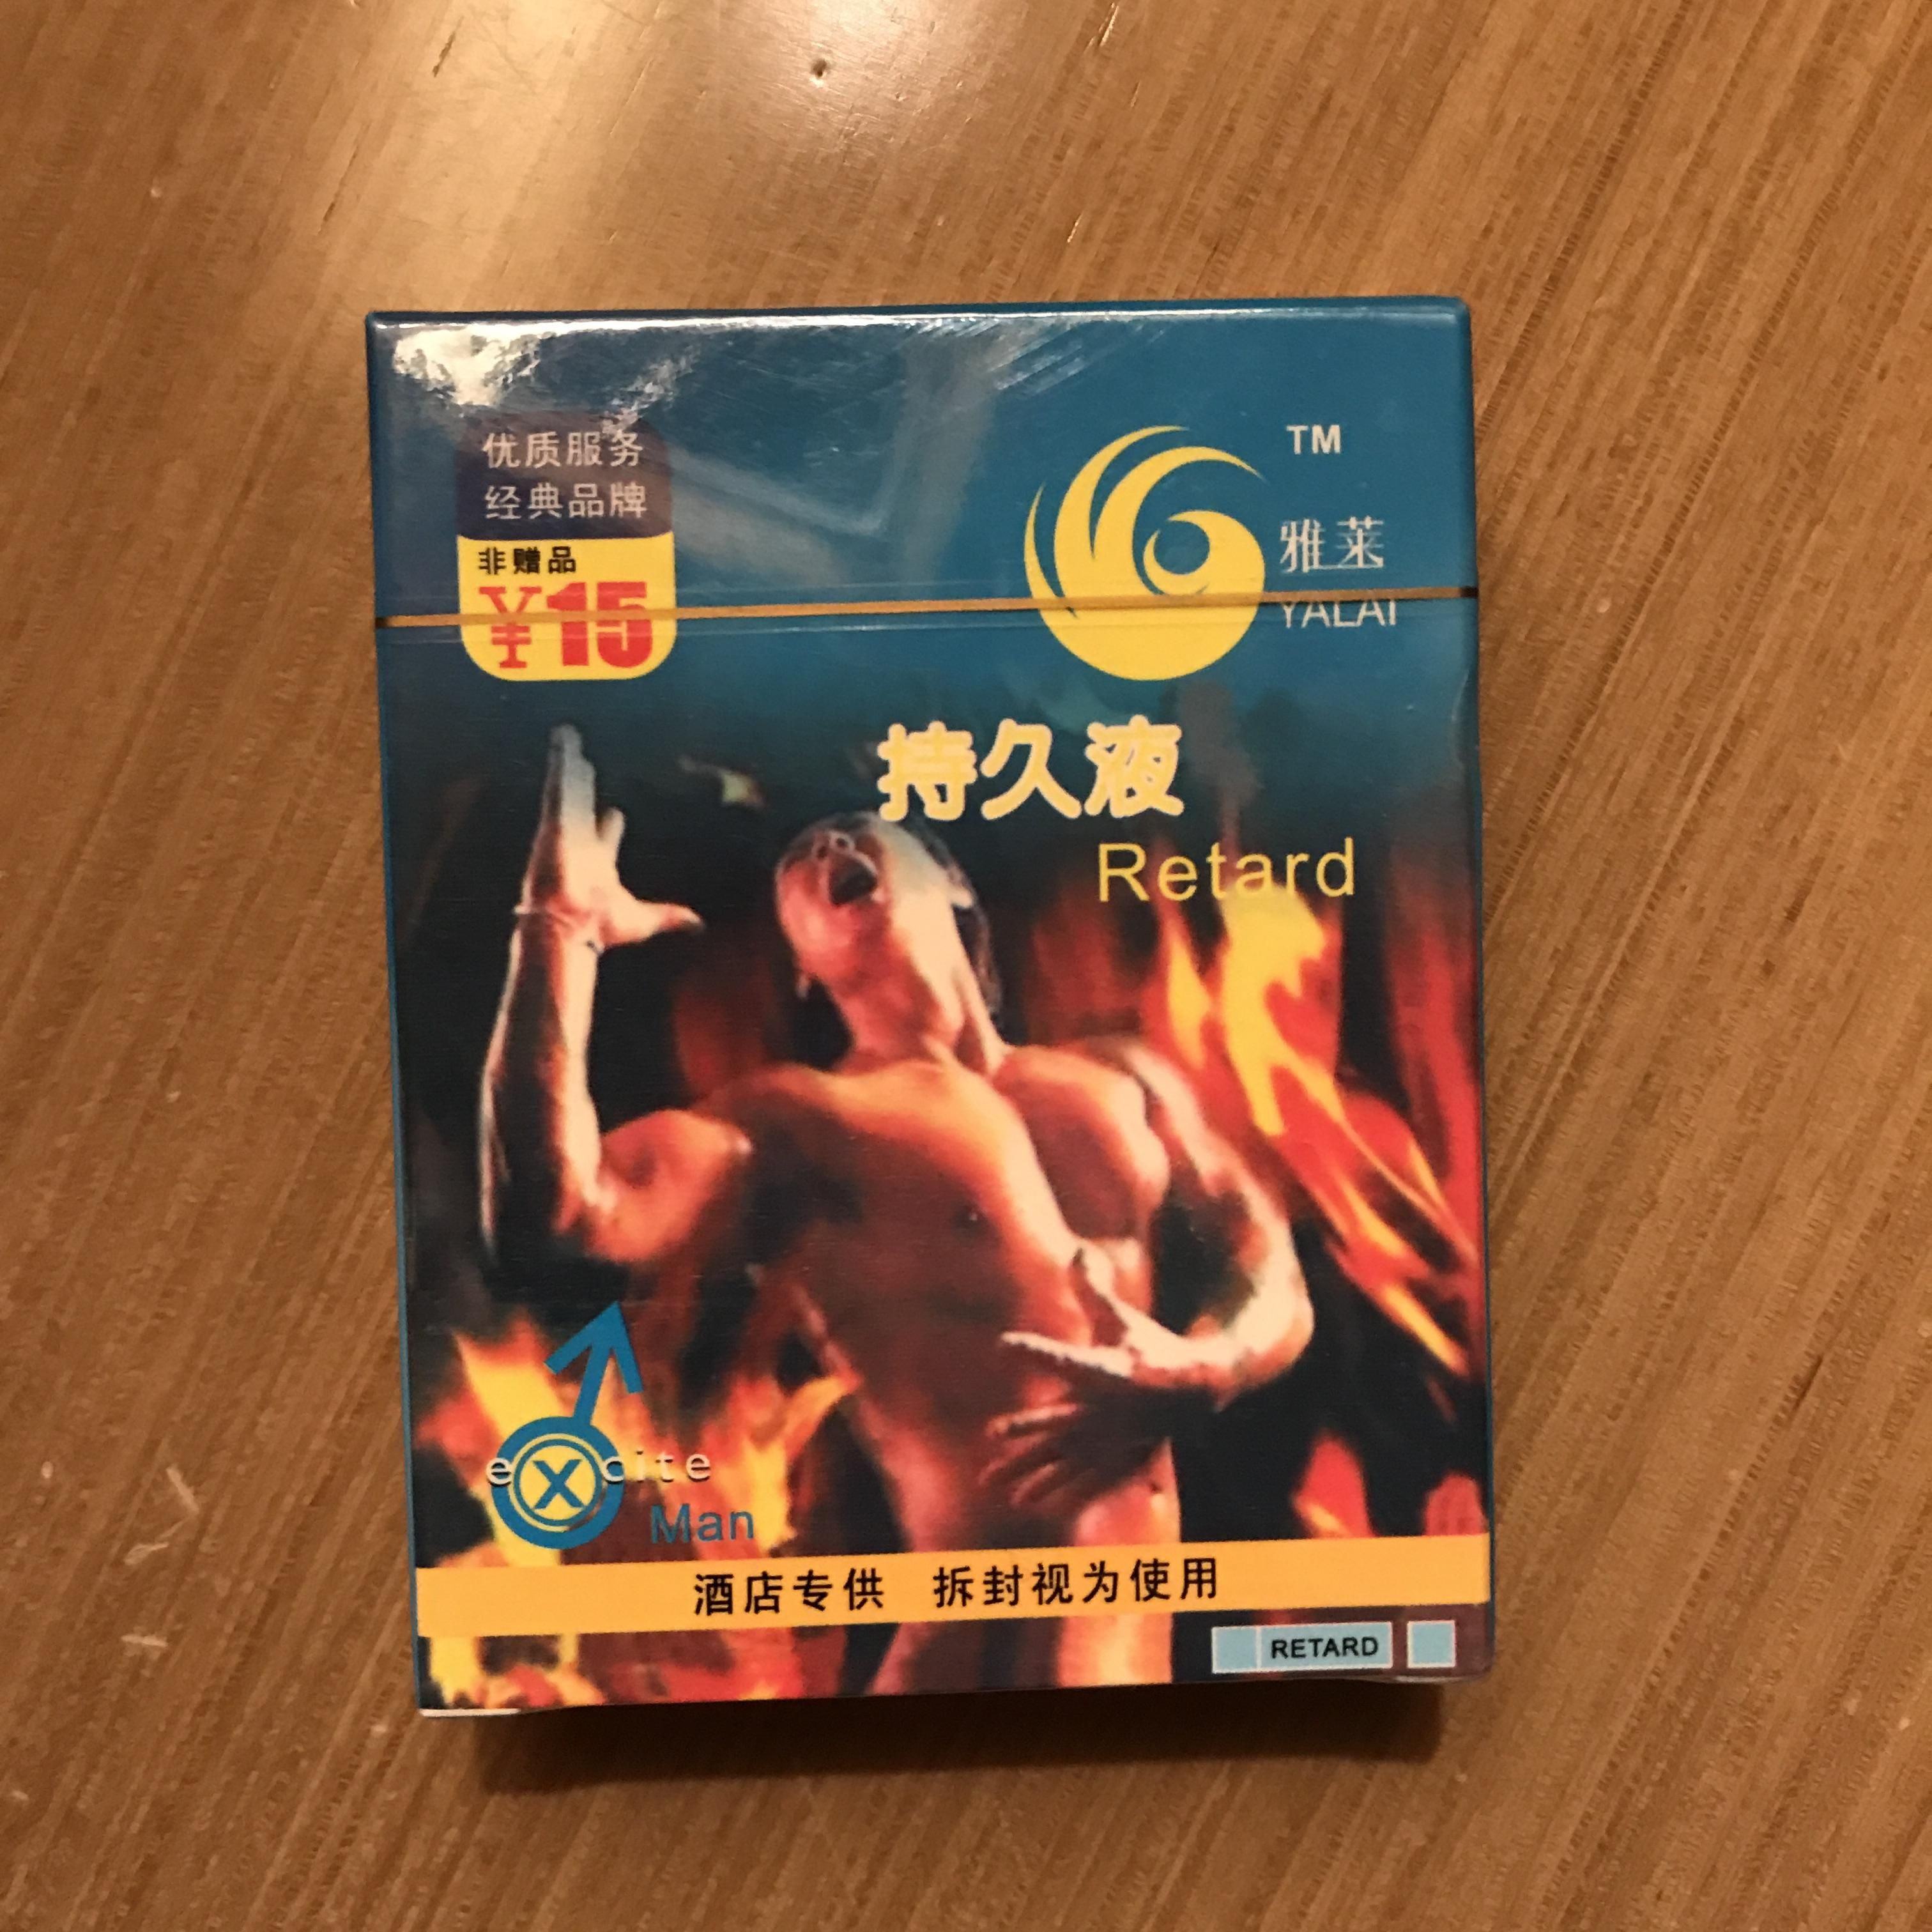 Condoms found in a Chinese hotel. For that special someone ;)